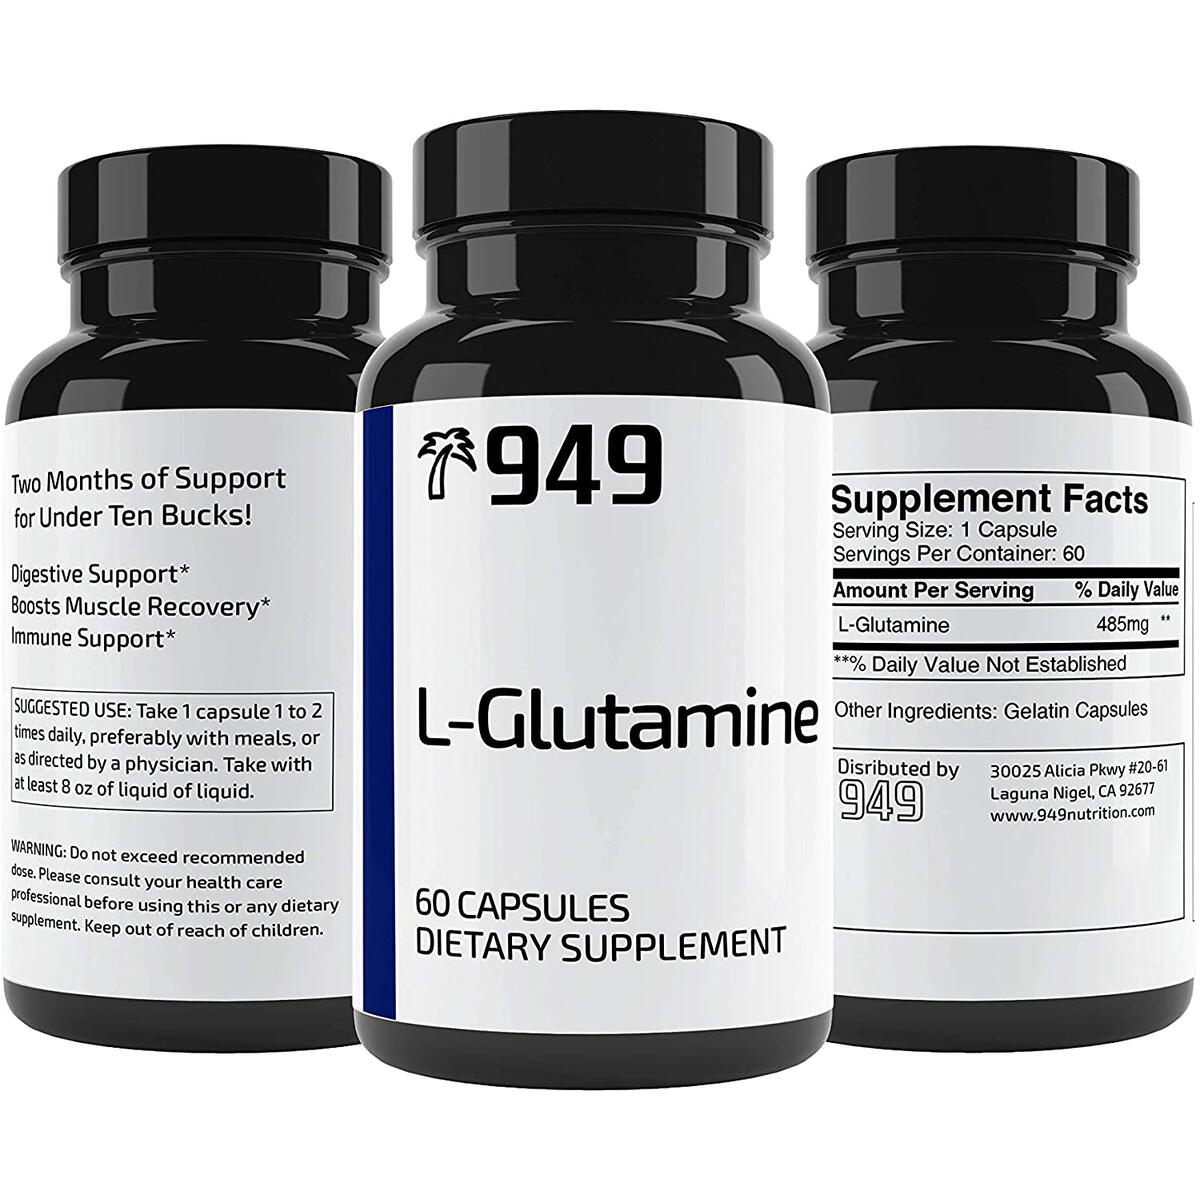 L-Glutamine, Under 10 Dollars, 60 Capsules, Healthy Digestion, Muscle Recovery, No Additive or Filler, Lab-Tested Purity, Made in USA, Satisfaction 100% Guaranteed, 949*